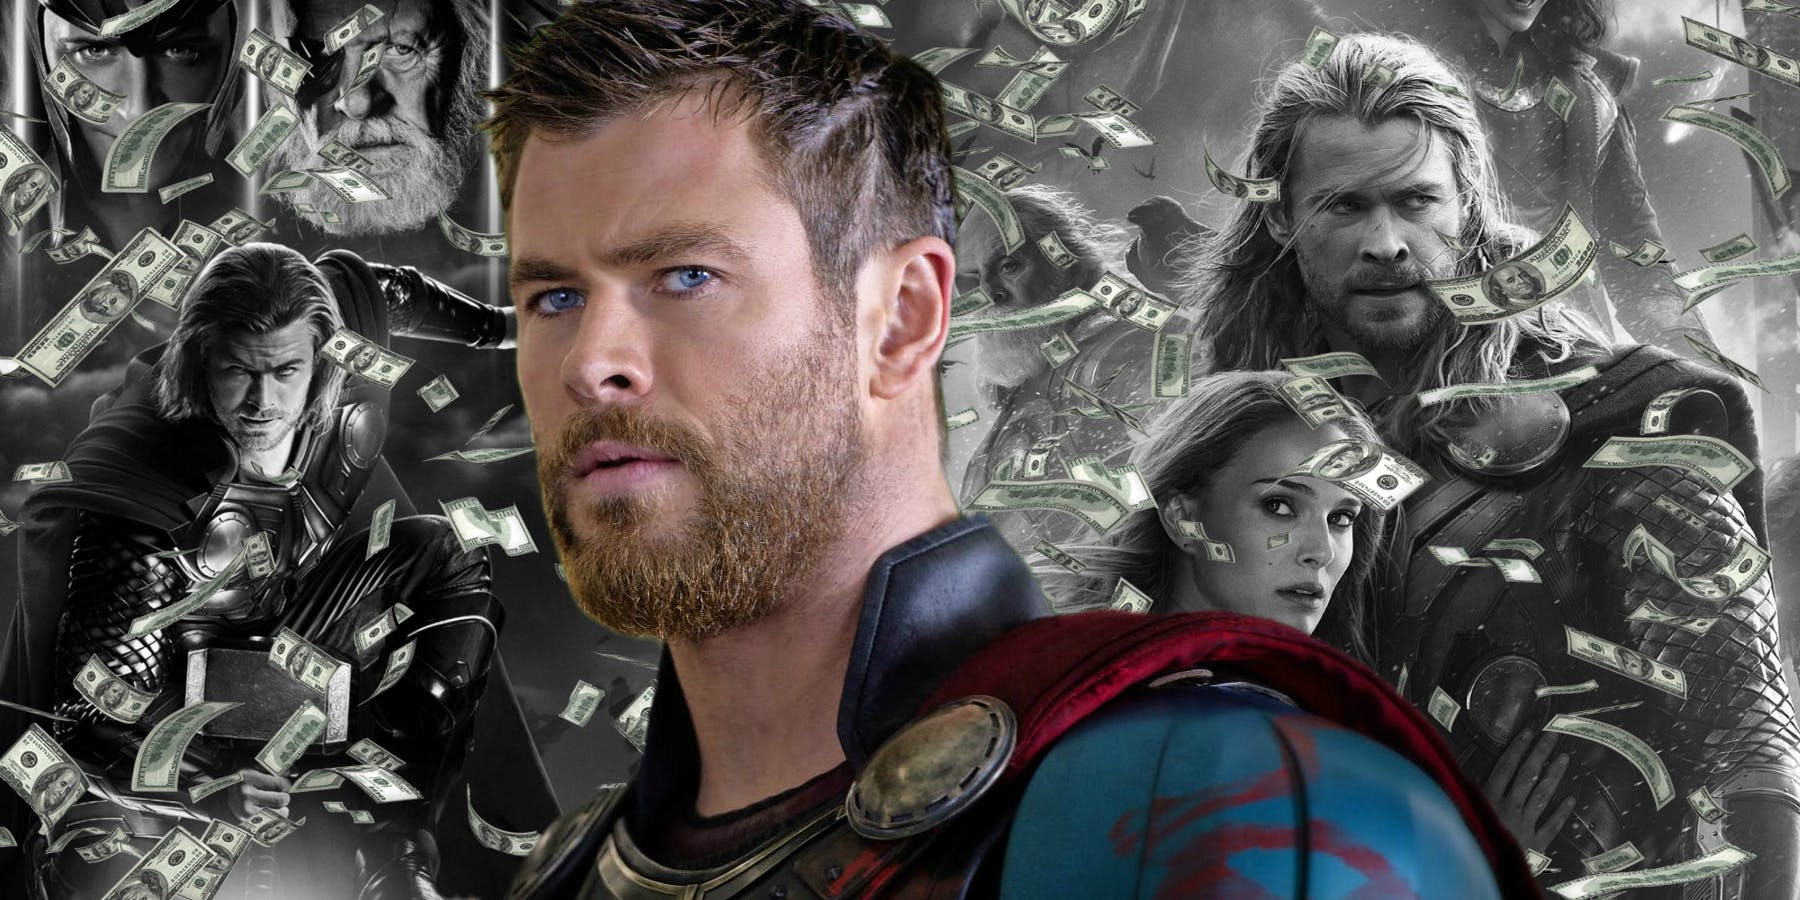 thor ragnarok tops box office with daddys home murder orient express 2017 images